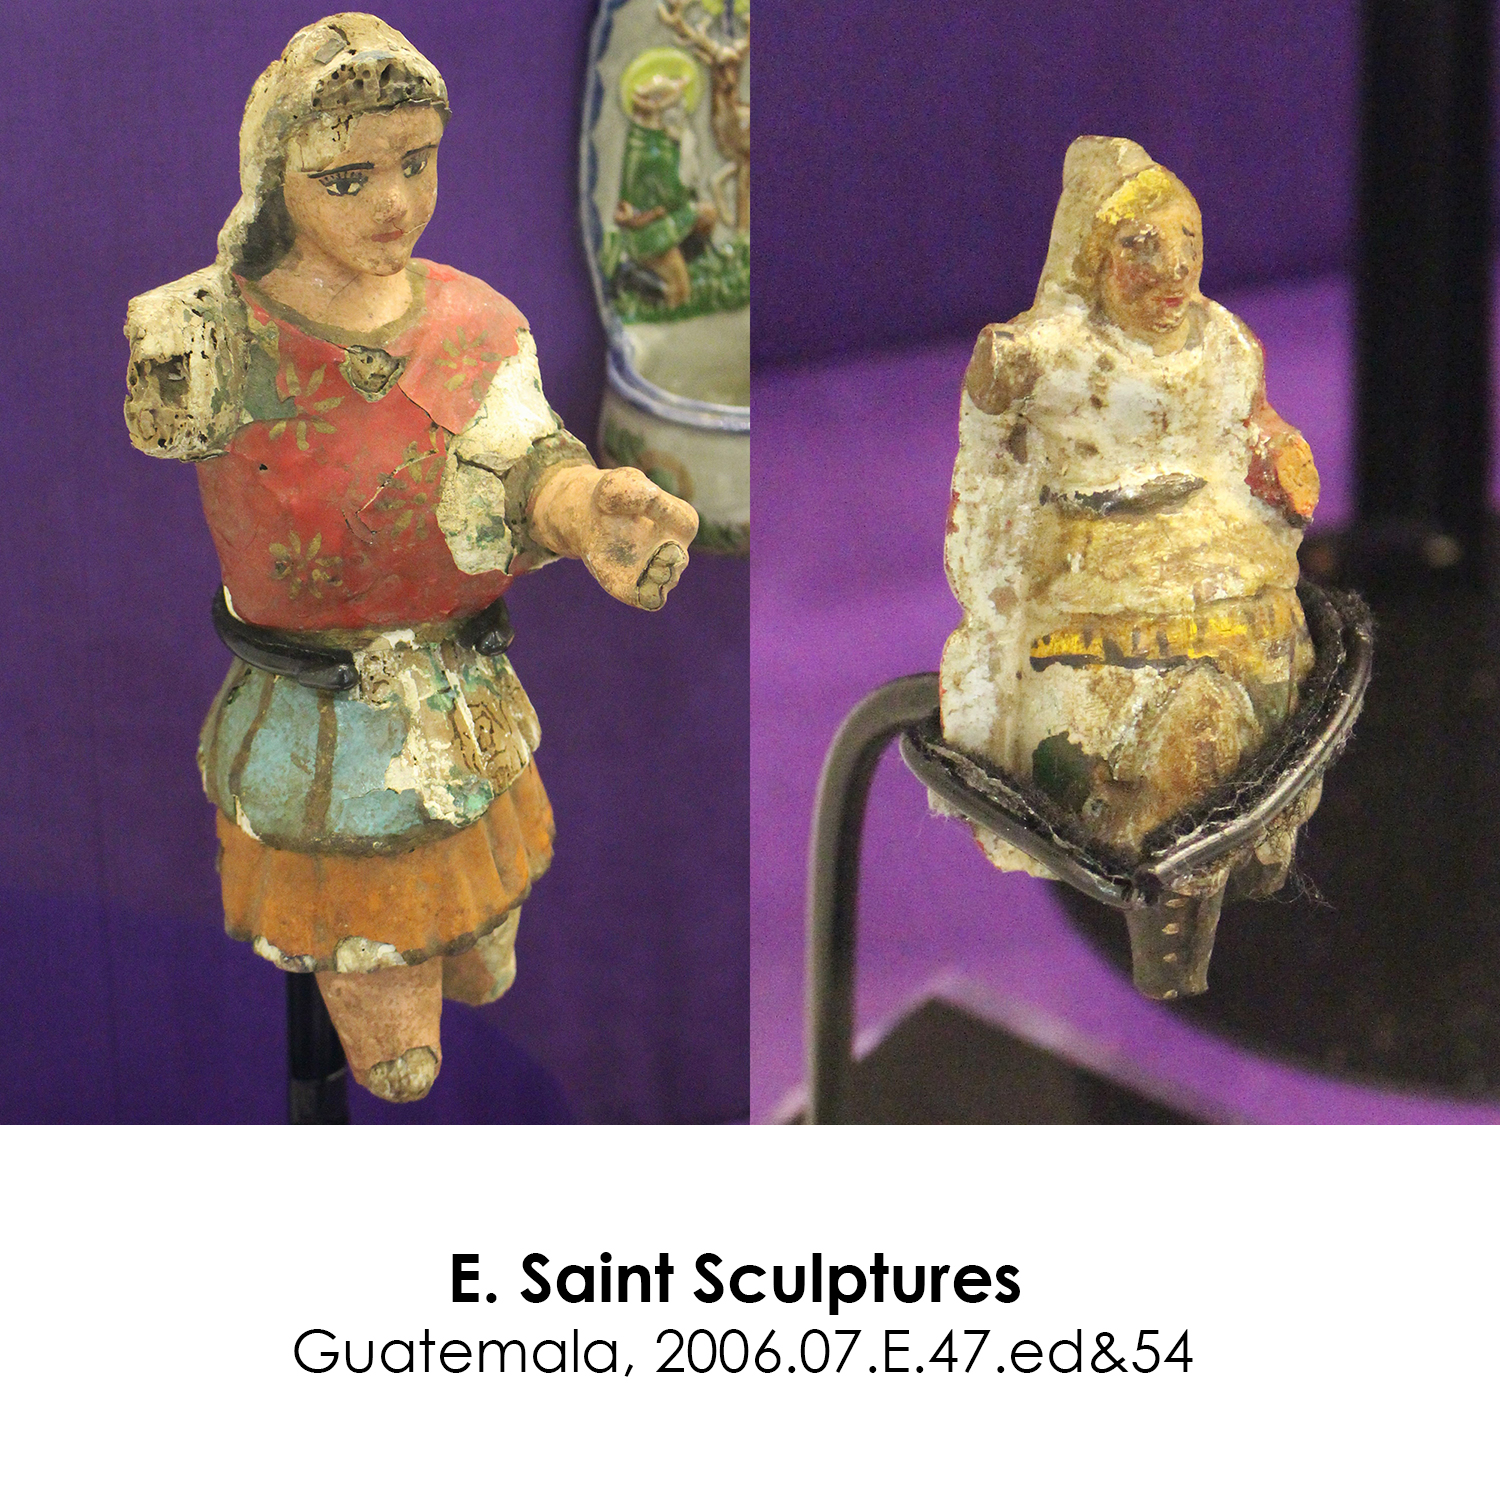 Saint Sculptures from Guatemala